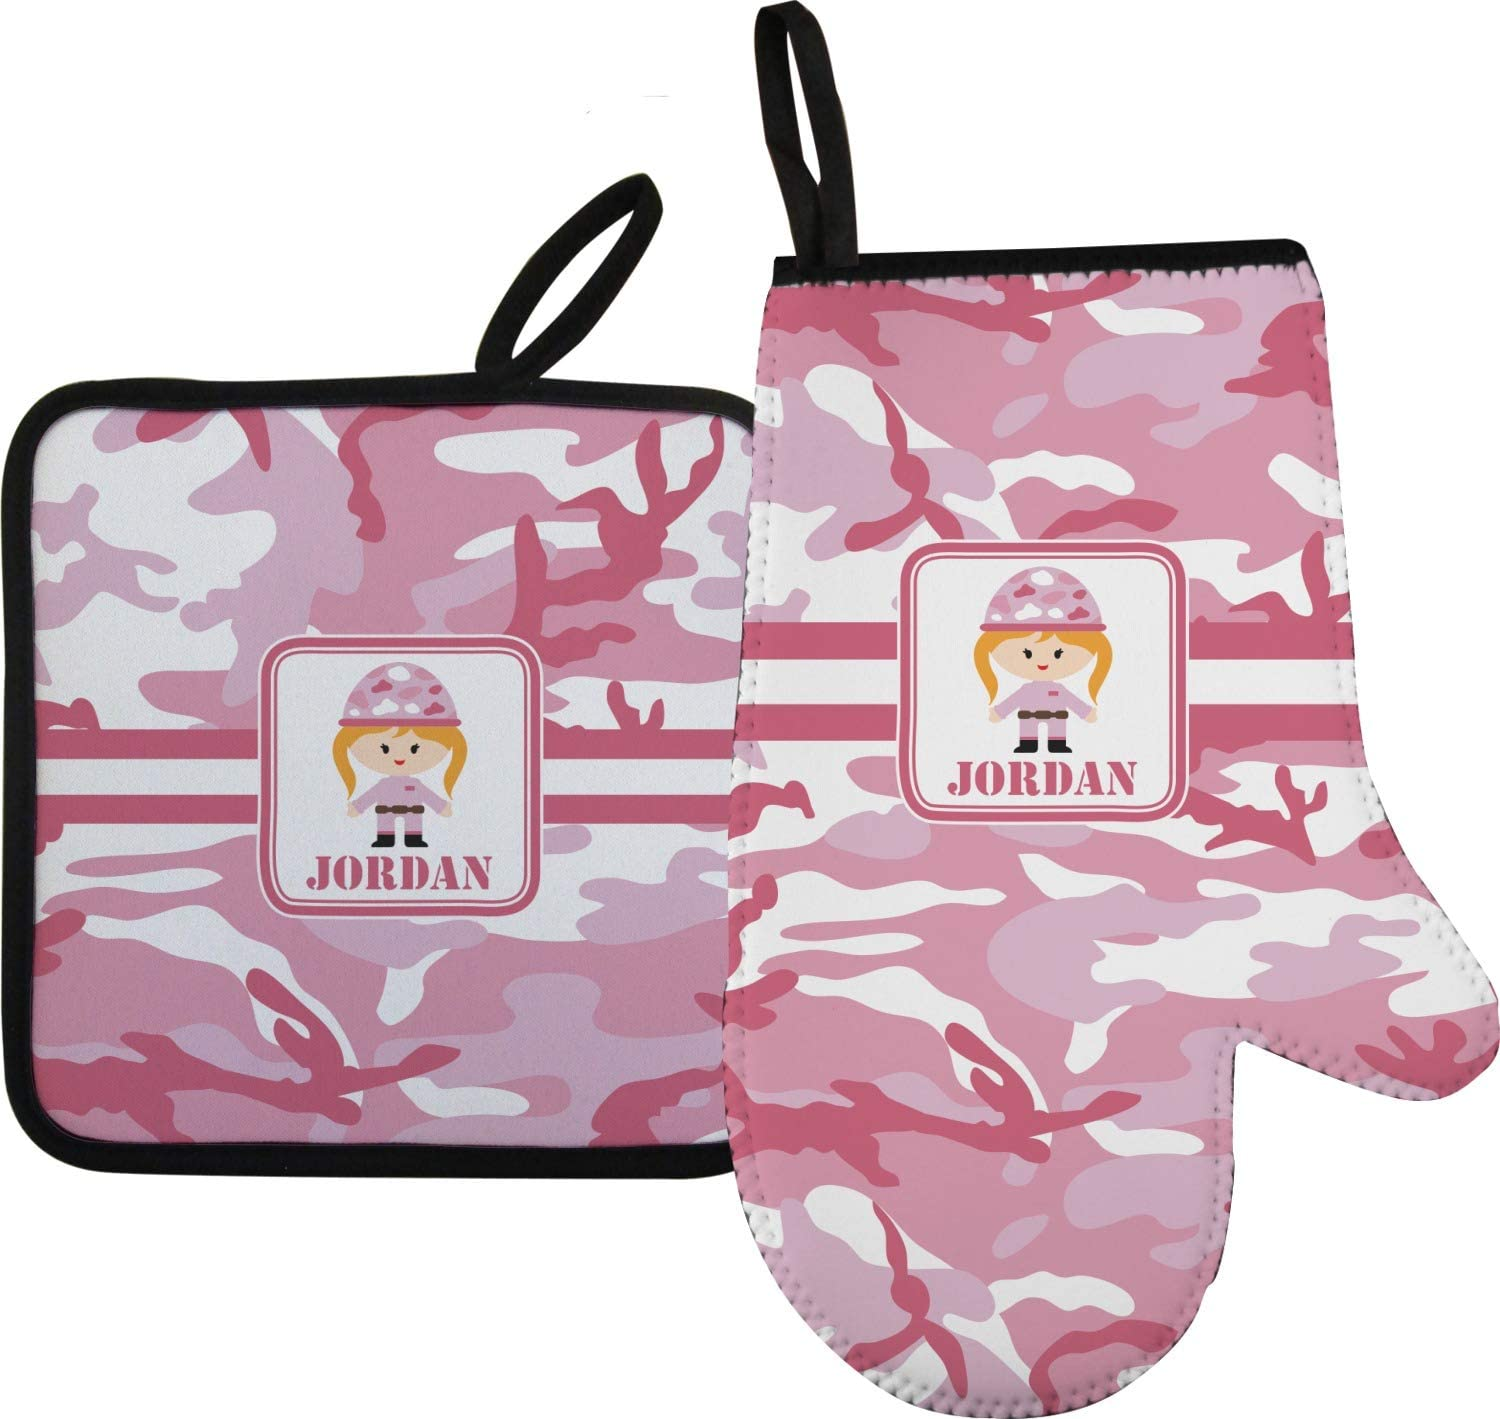 YouCustomizeIt Pink Camo Oven Mitt & Pot Holder (Personalized)